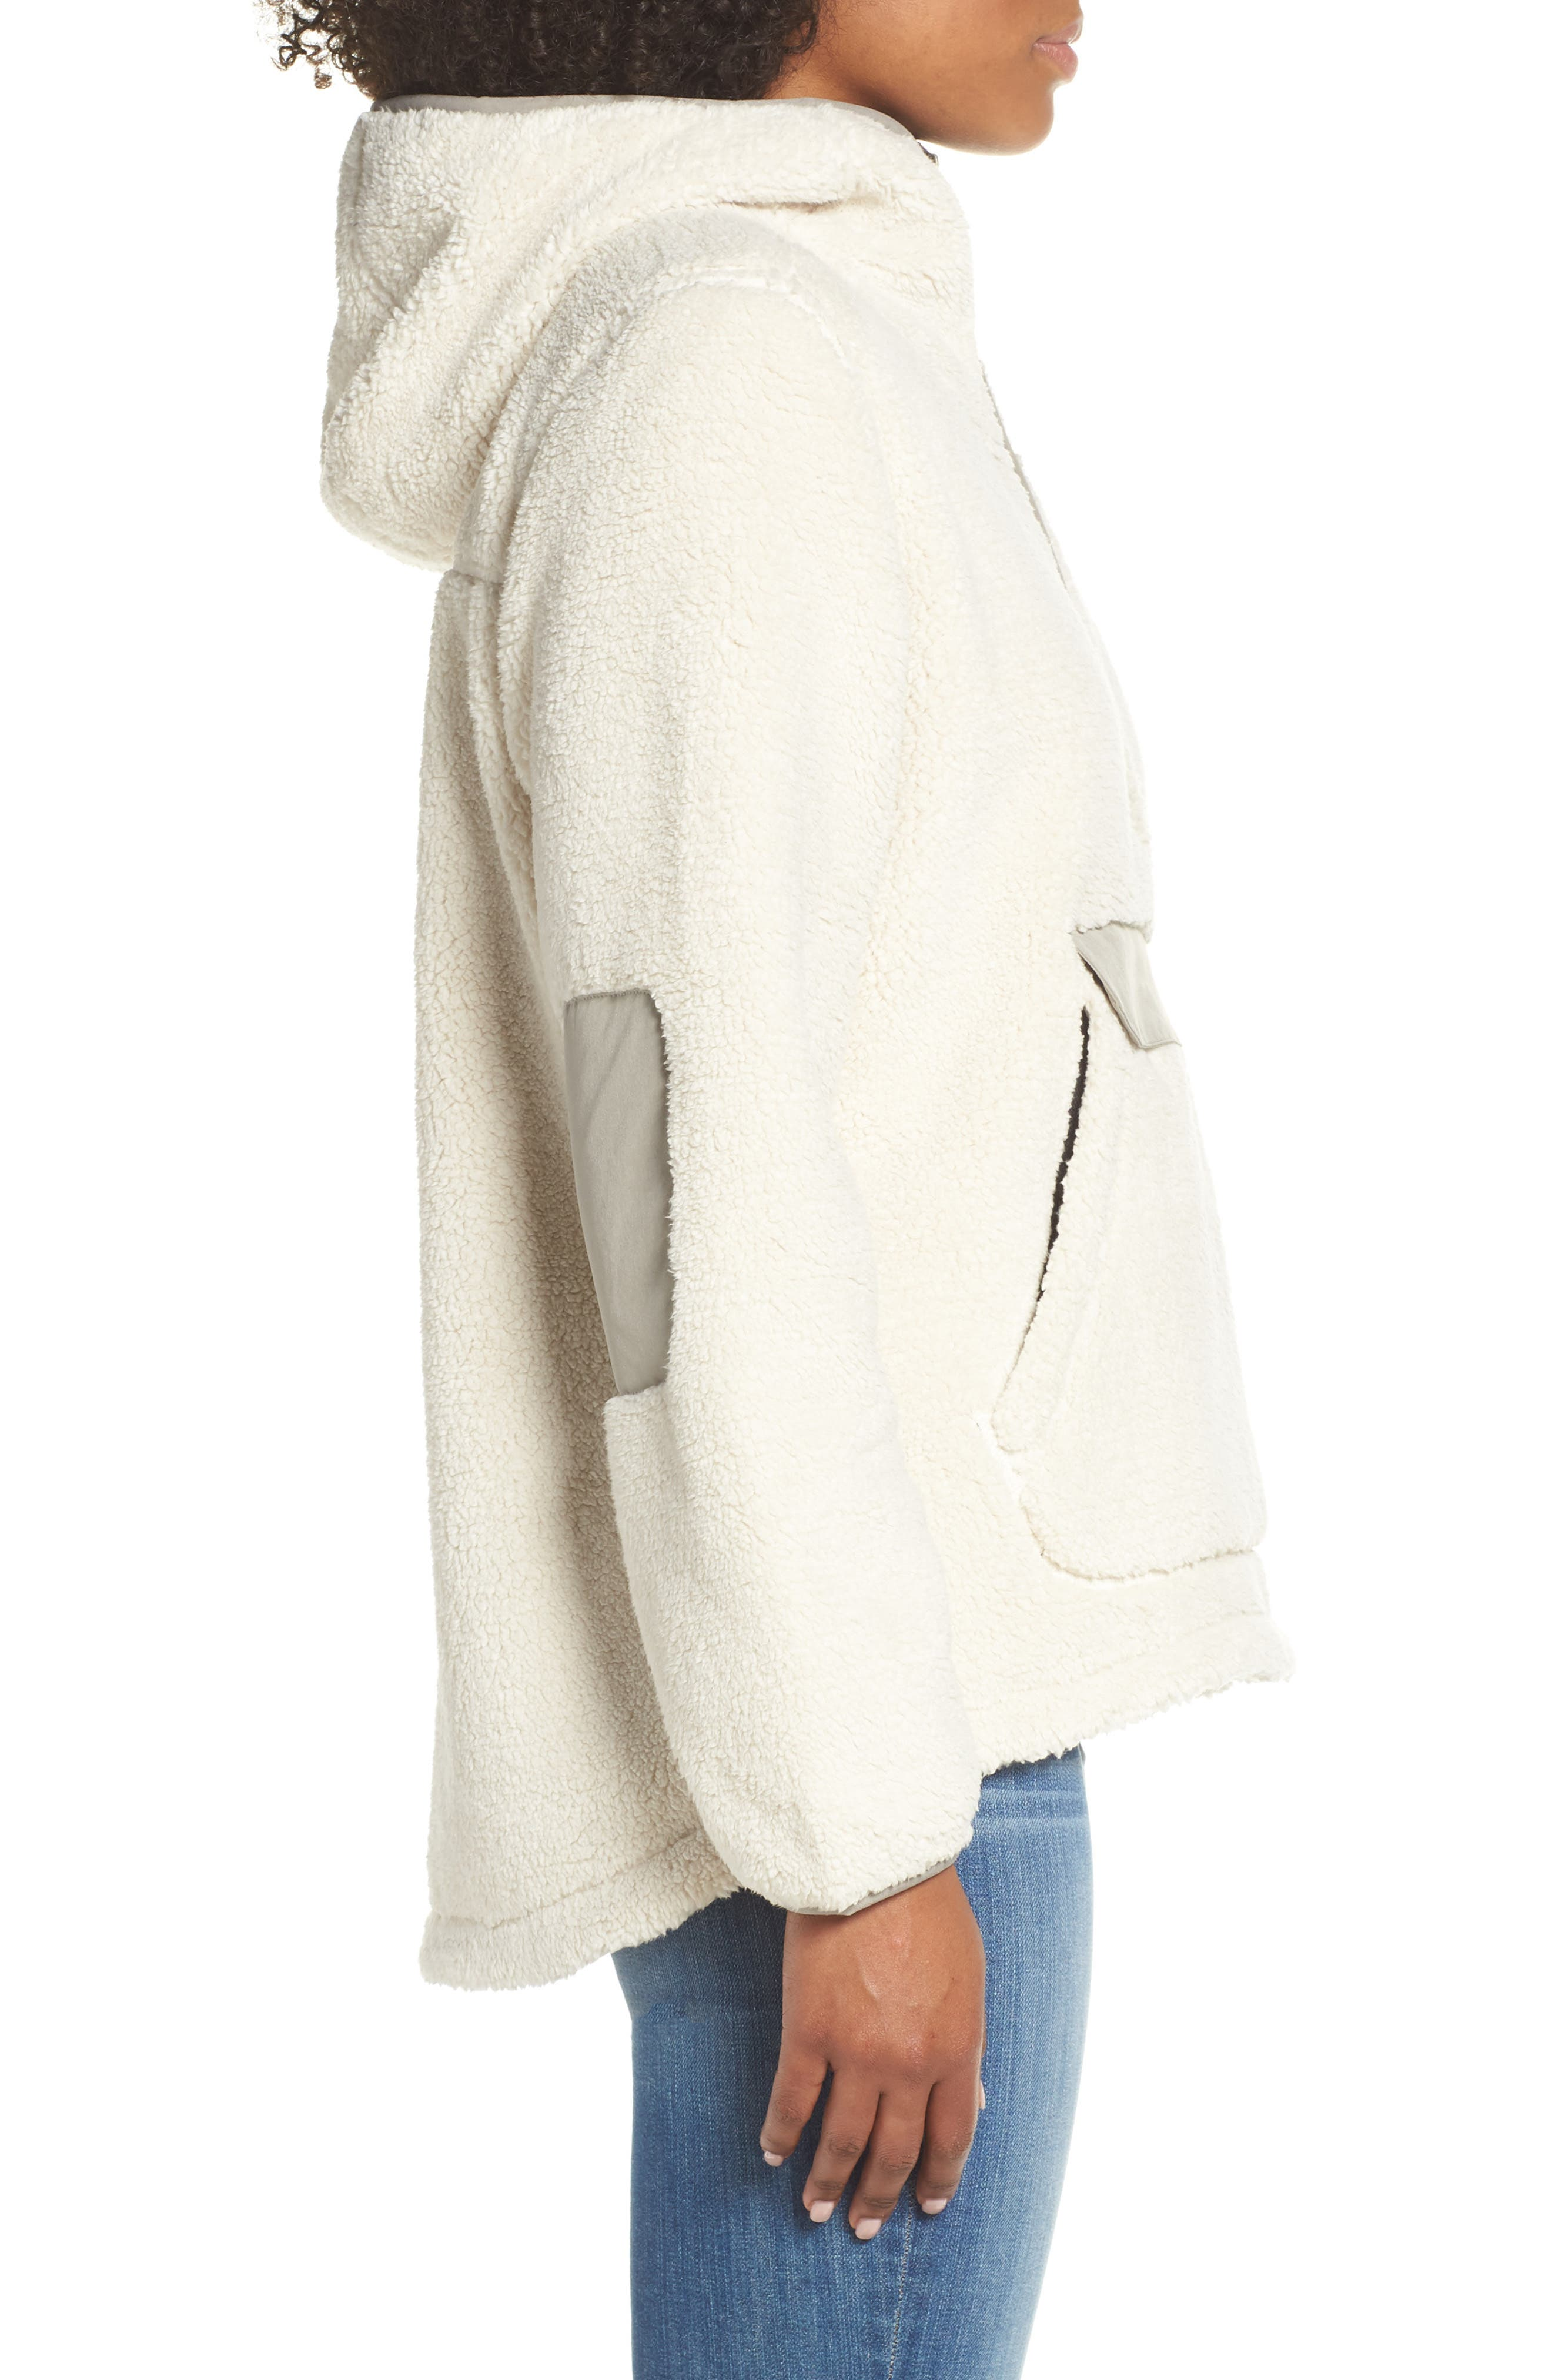 THE NORTH FACE, Campshire High Pile Fleece Pullover Hoodie, Alternate thumbnail 4, color, VINTAGE WHITE/ GREY